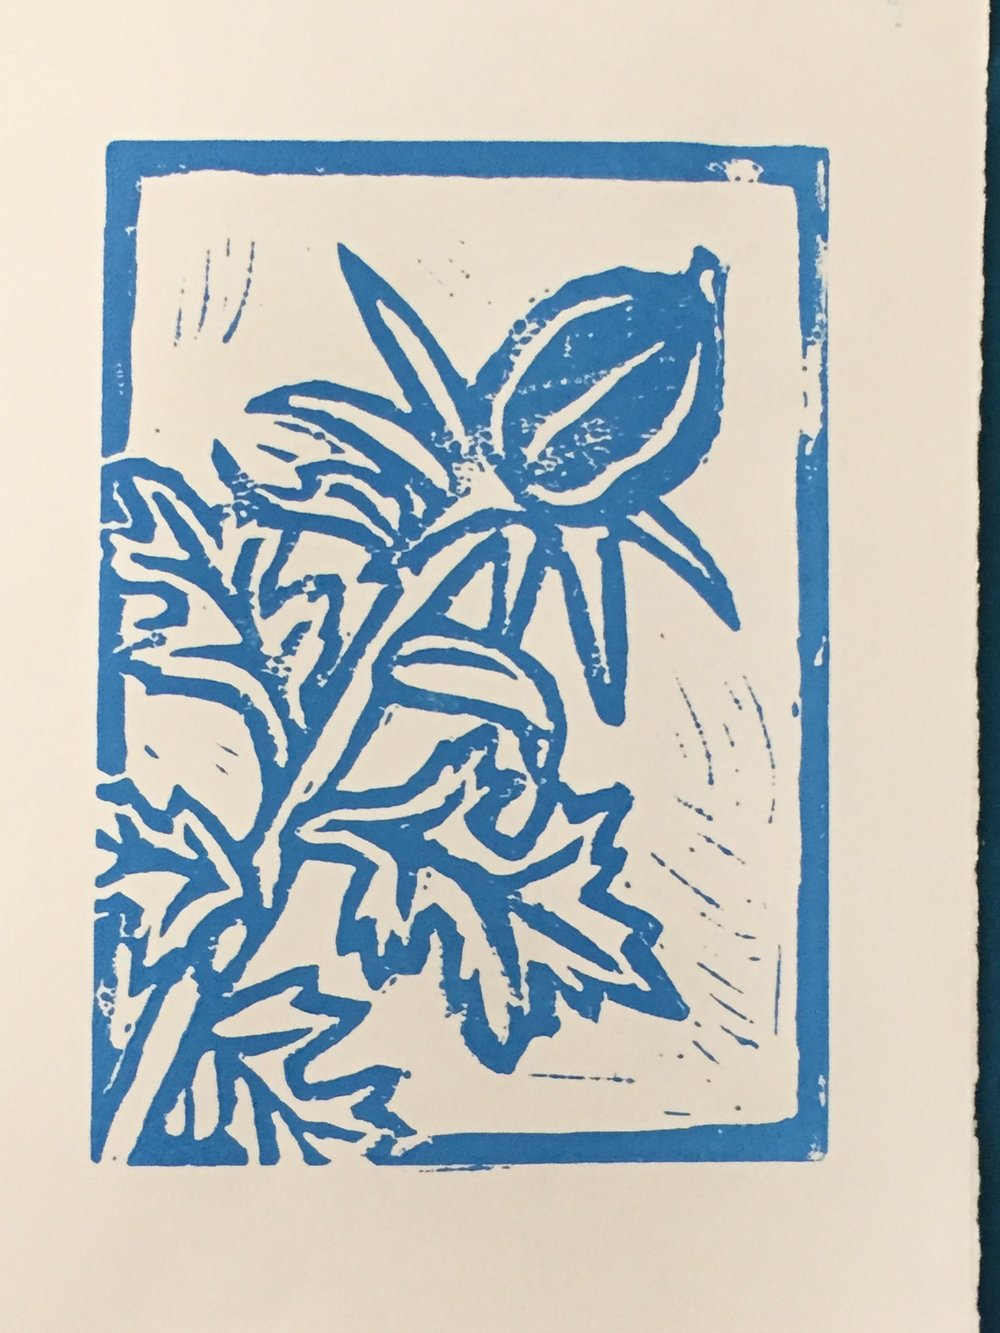 figs from thistles (Ver. 2) - 2017, Linocut